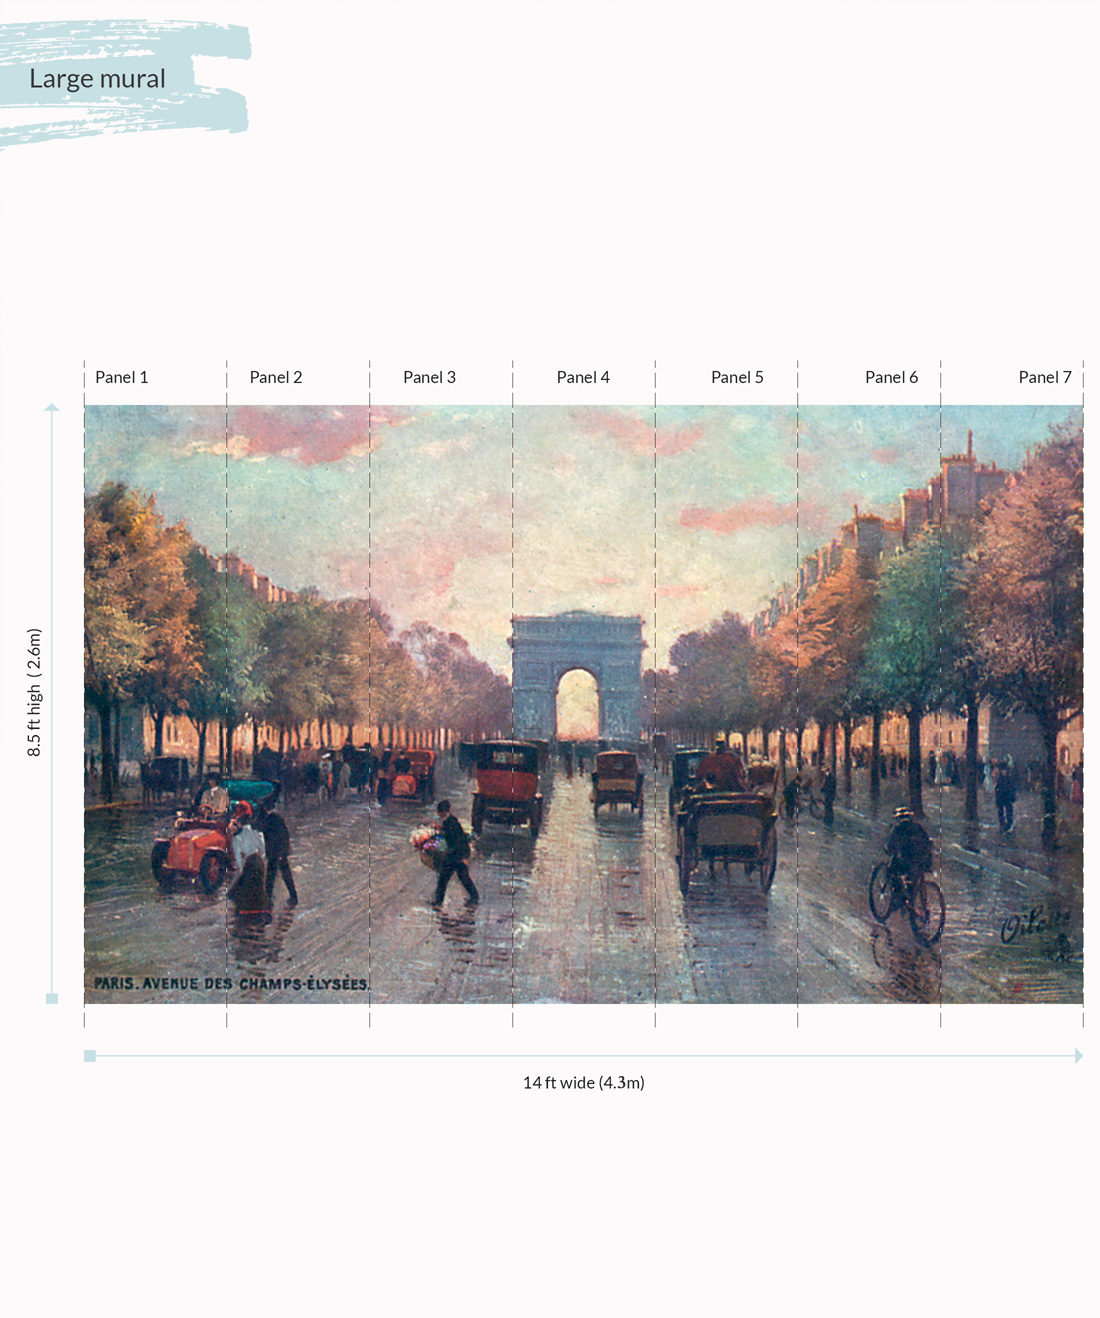 Champs Elysees Wall Mural - Large